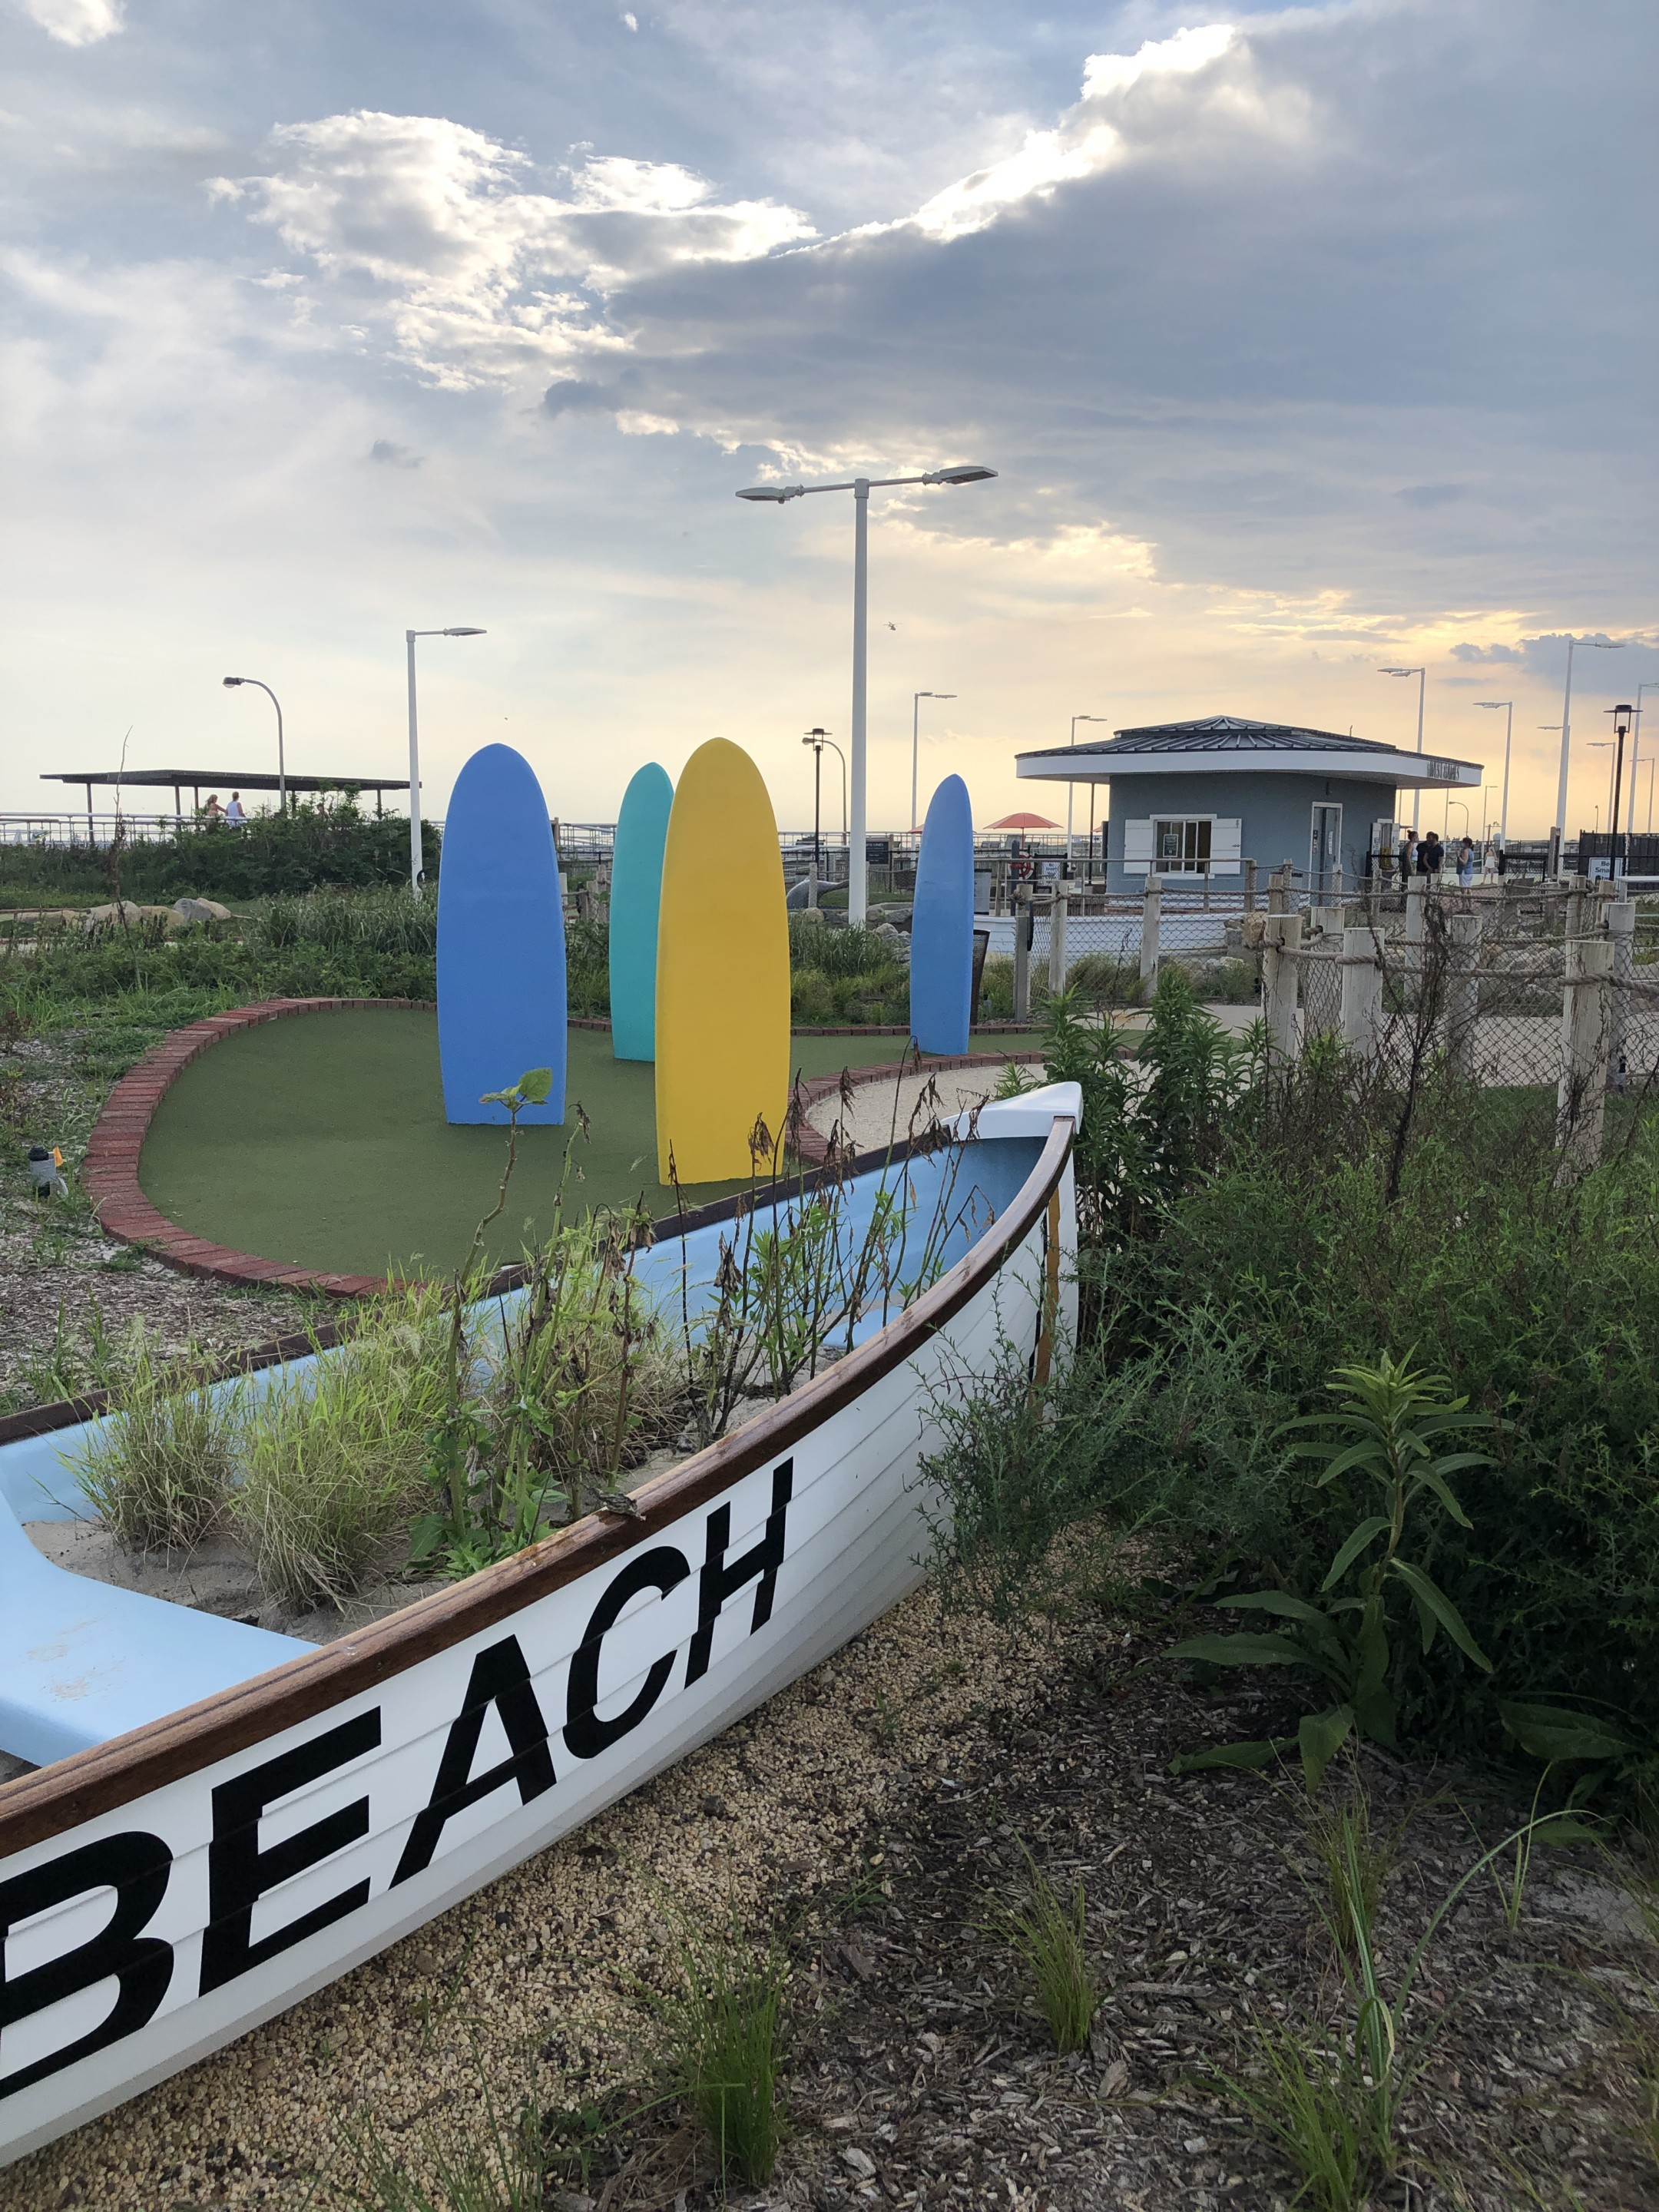 Yellow and blue boards sticking out of mini-golf dunes